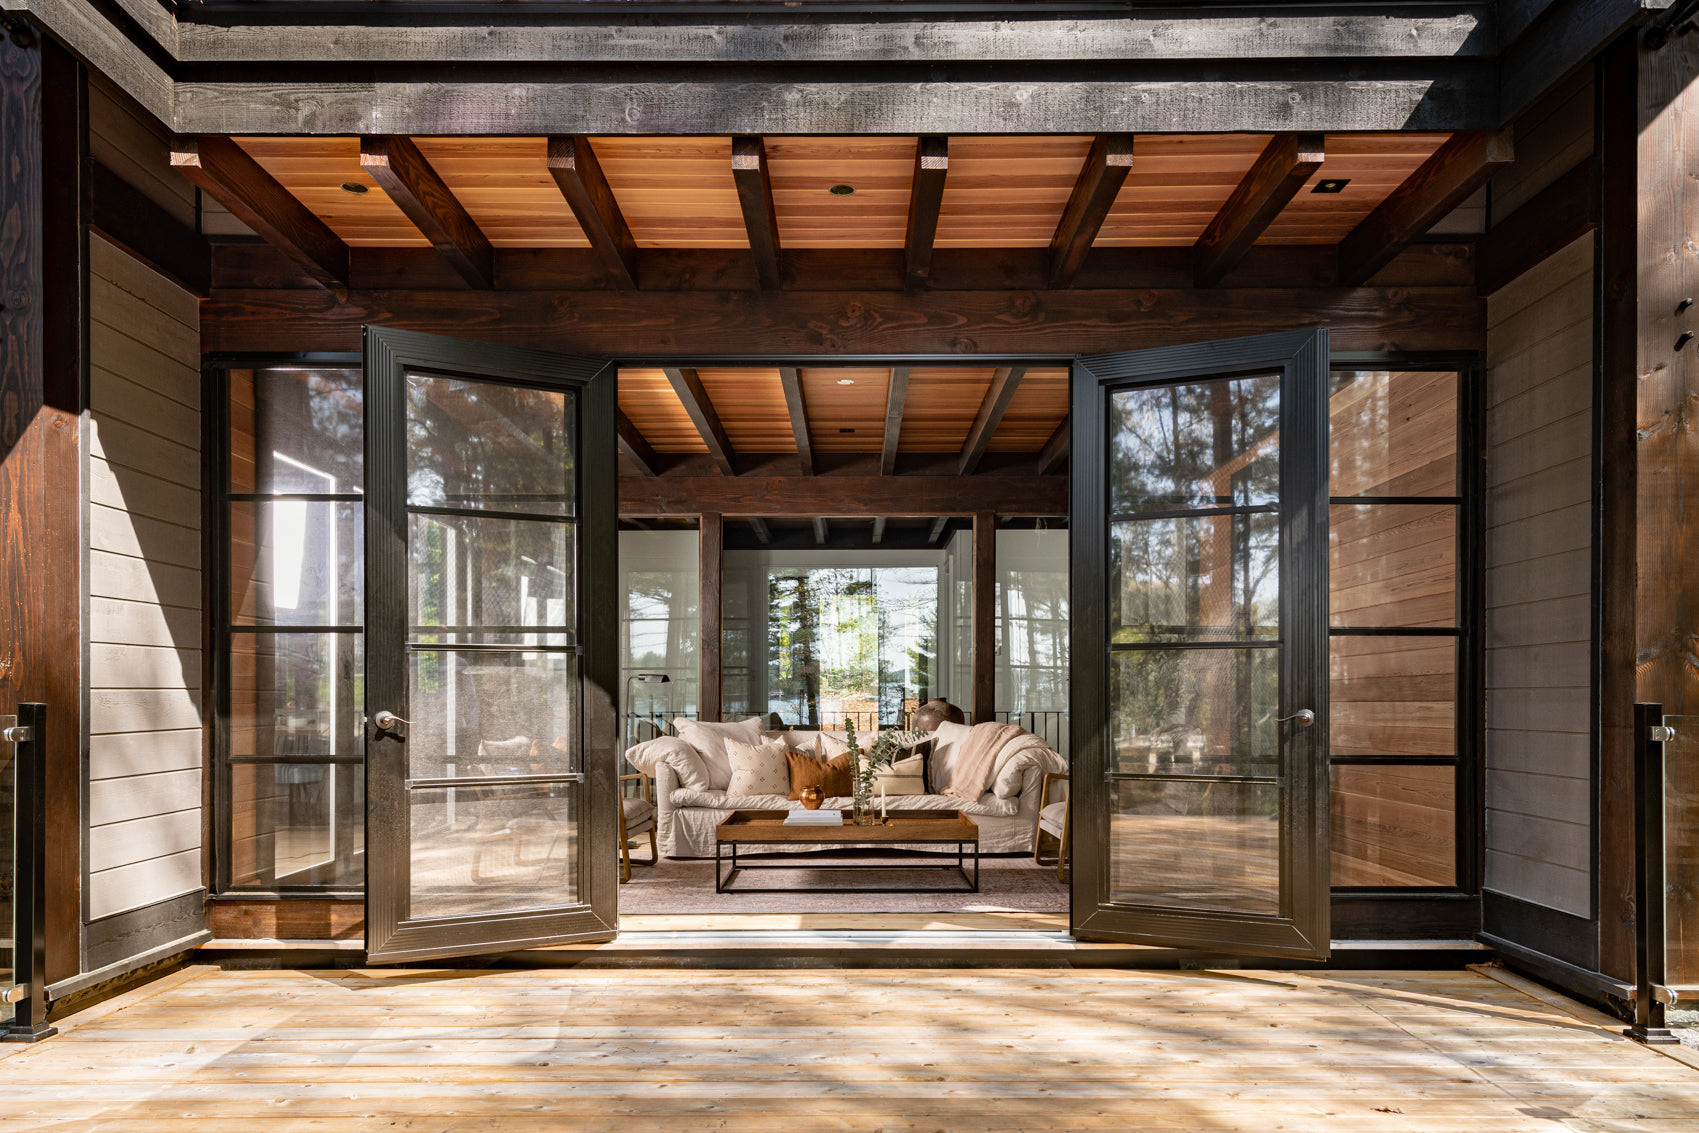 Sunroom surrounded by nature.